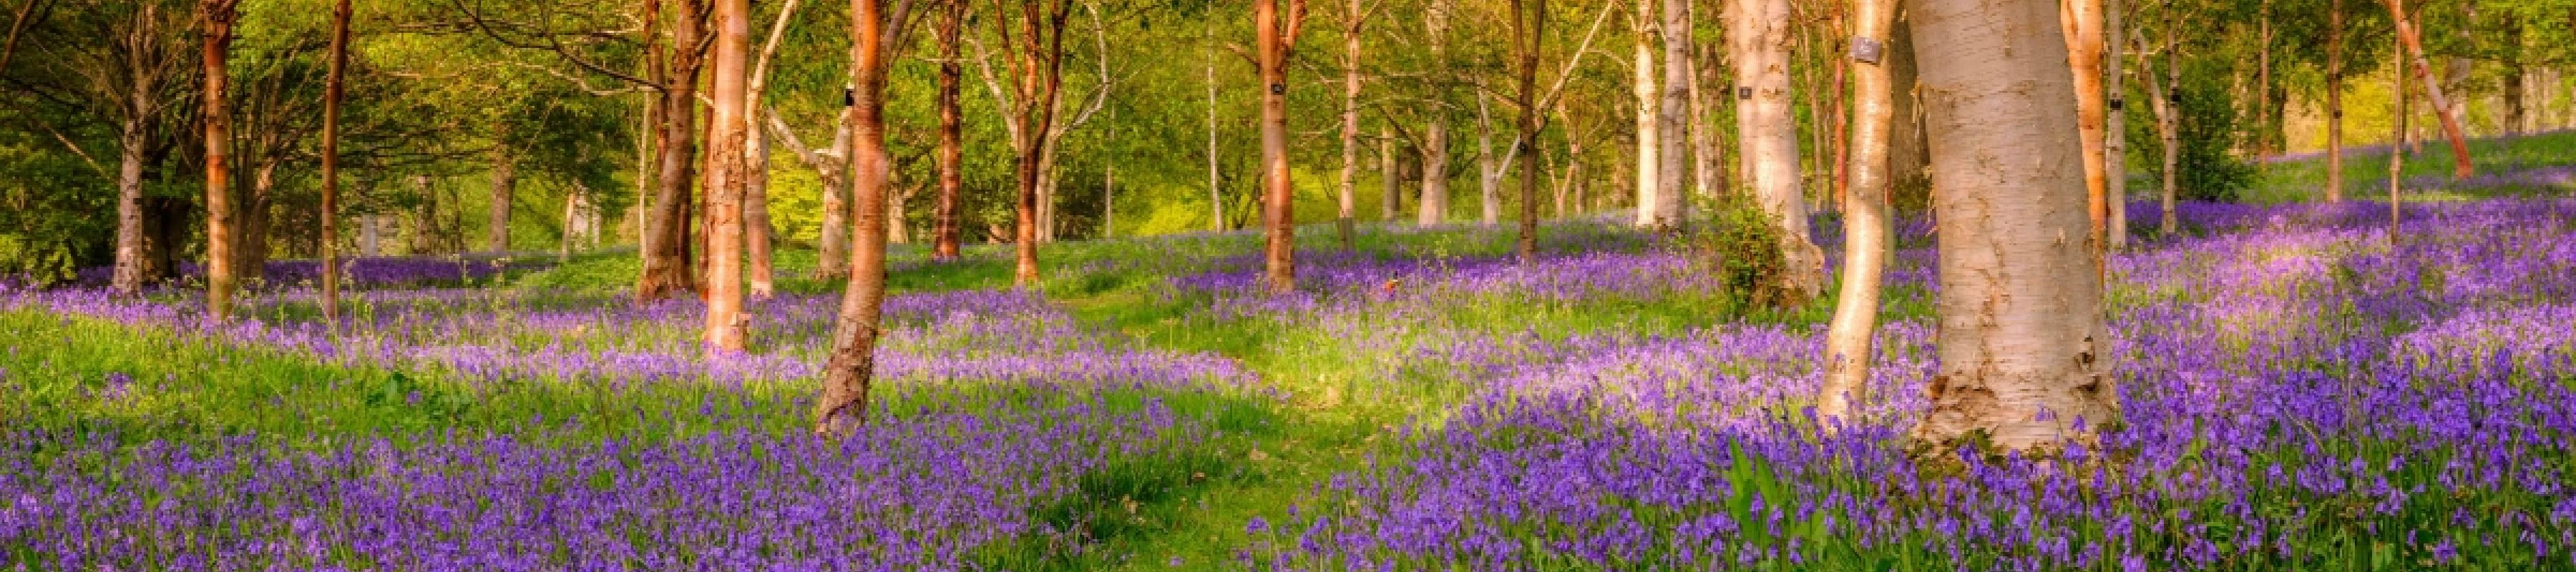 Bluebells  in Bethlehem wood, Wakehurst